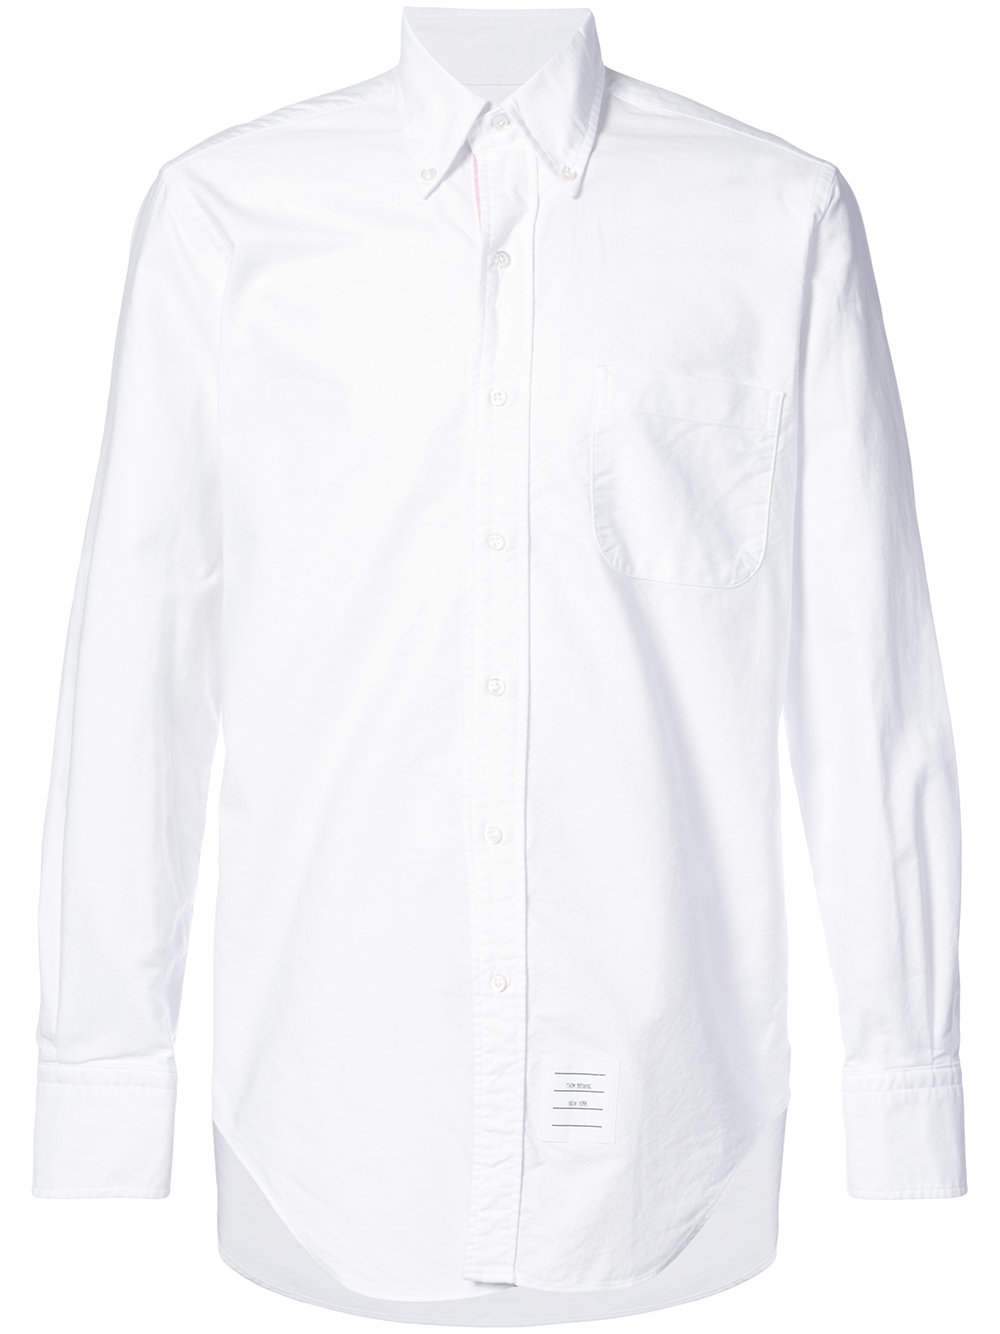 Thom Browne   Engineered White Button Down Shirt